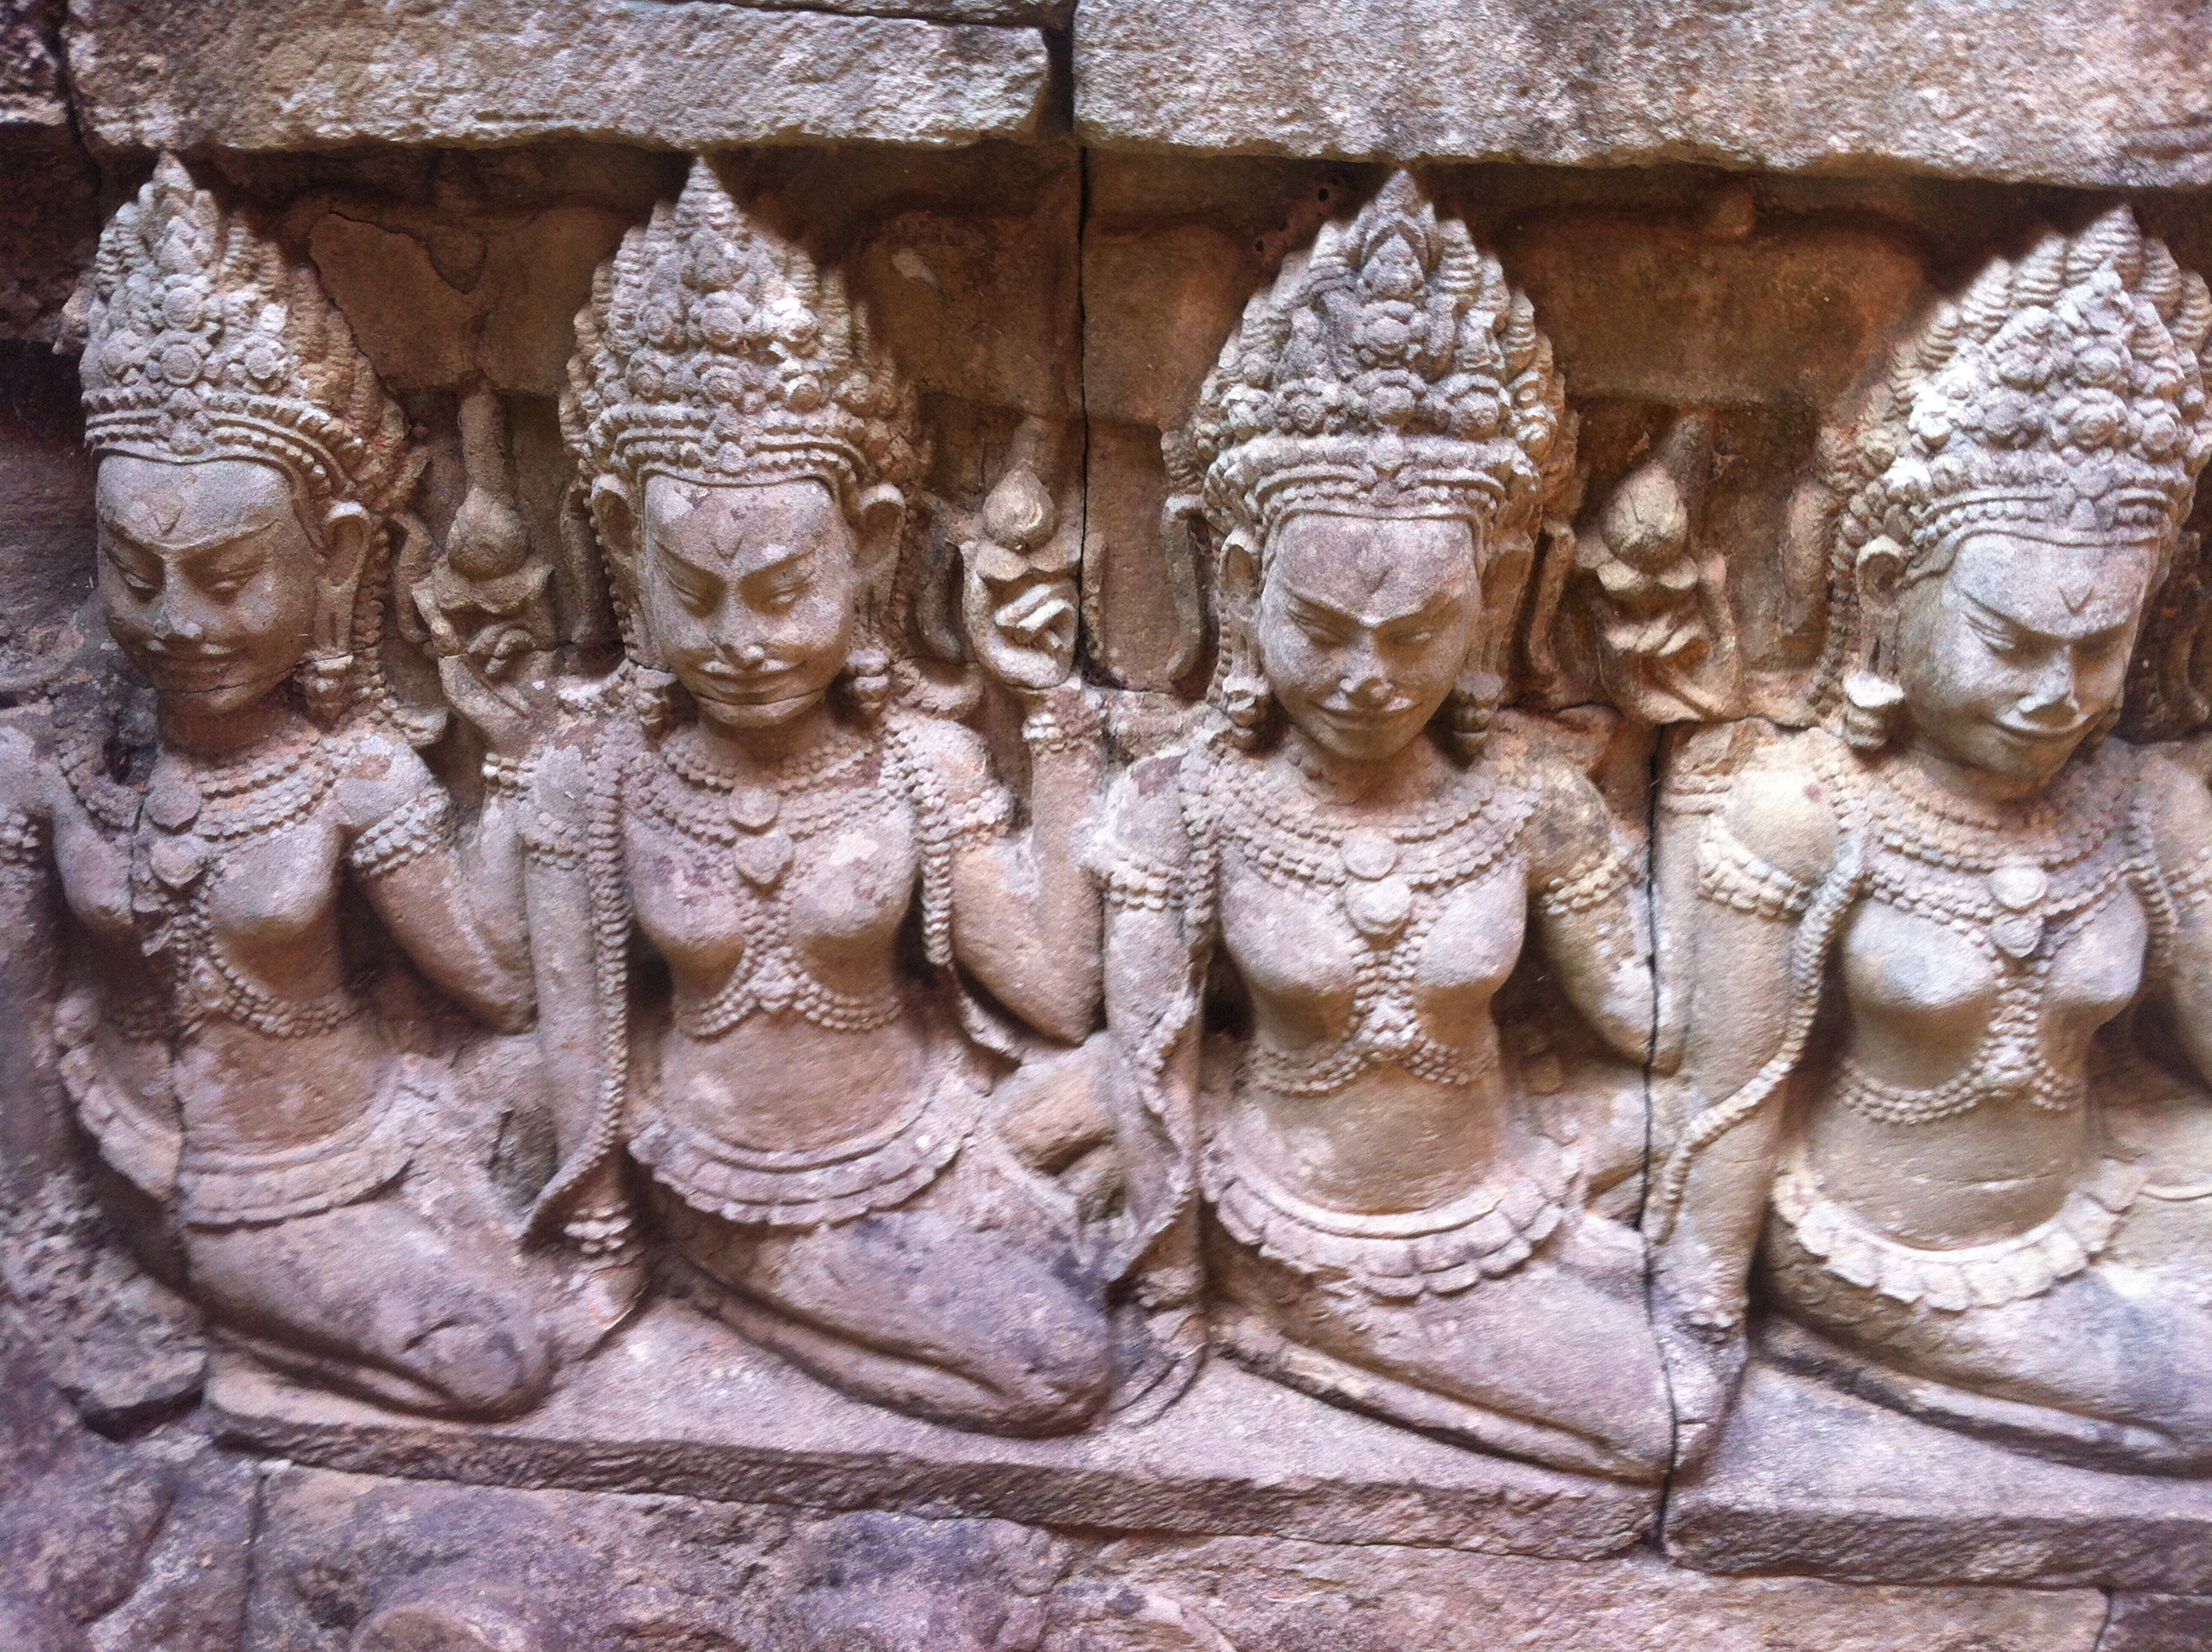 A week in Siem Reap, seeing Angkor Wat and what it cost